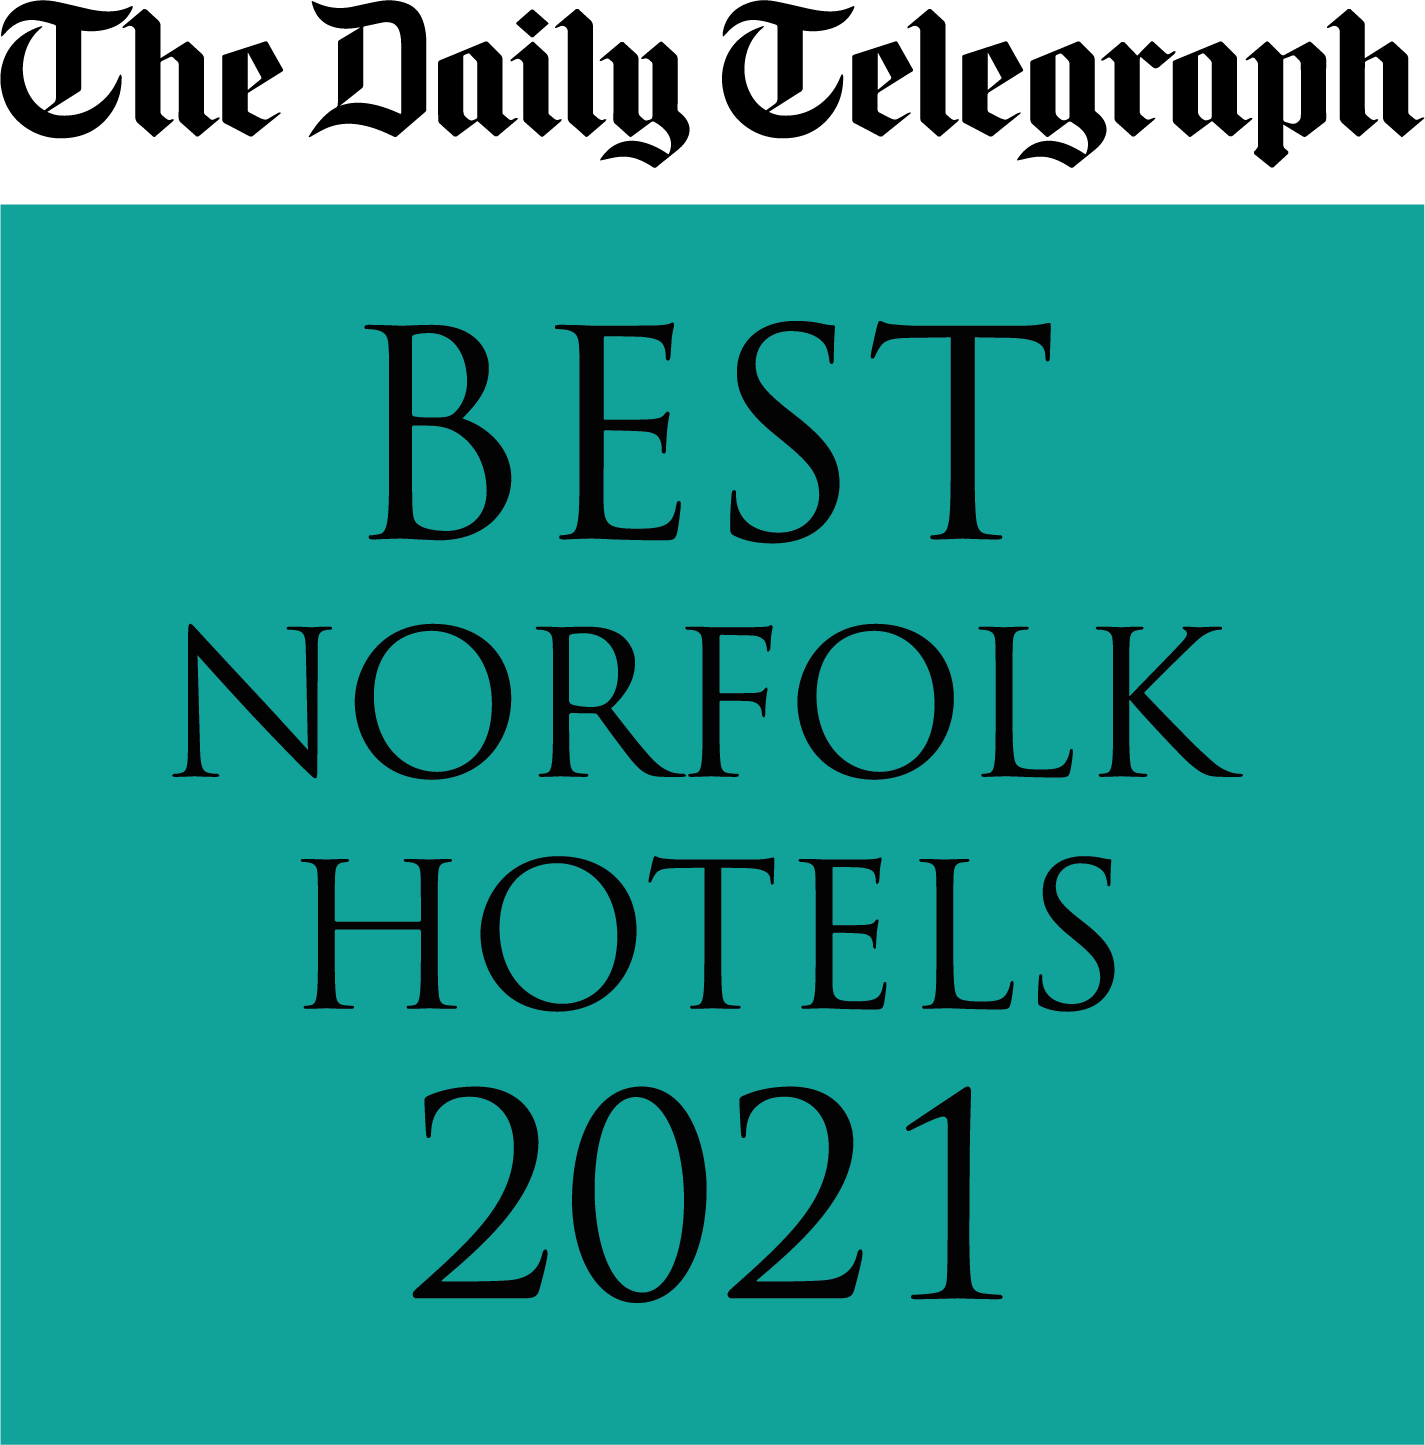 Daily Telegraph Norfolk Best Hotels 2021